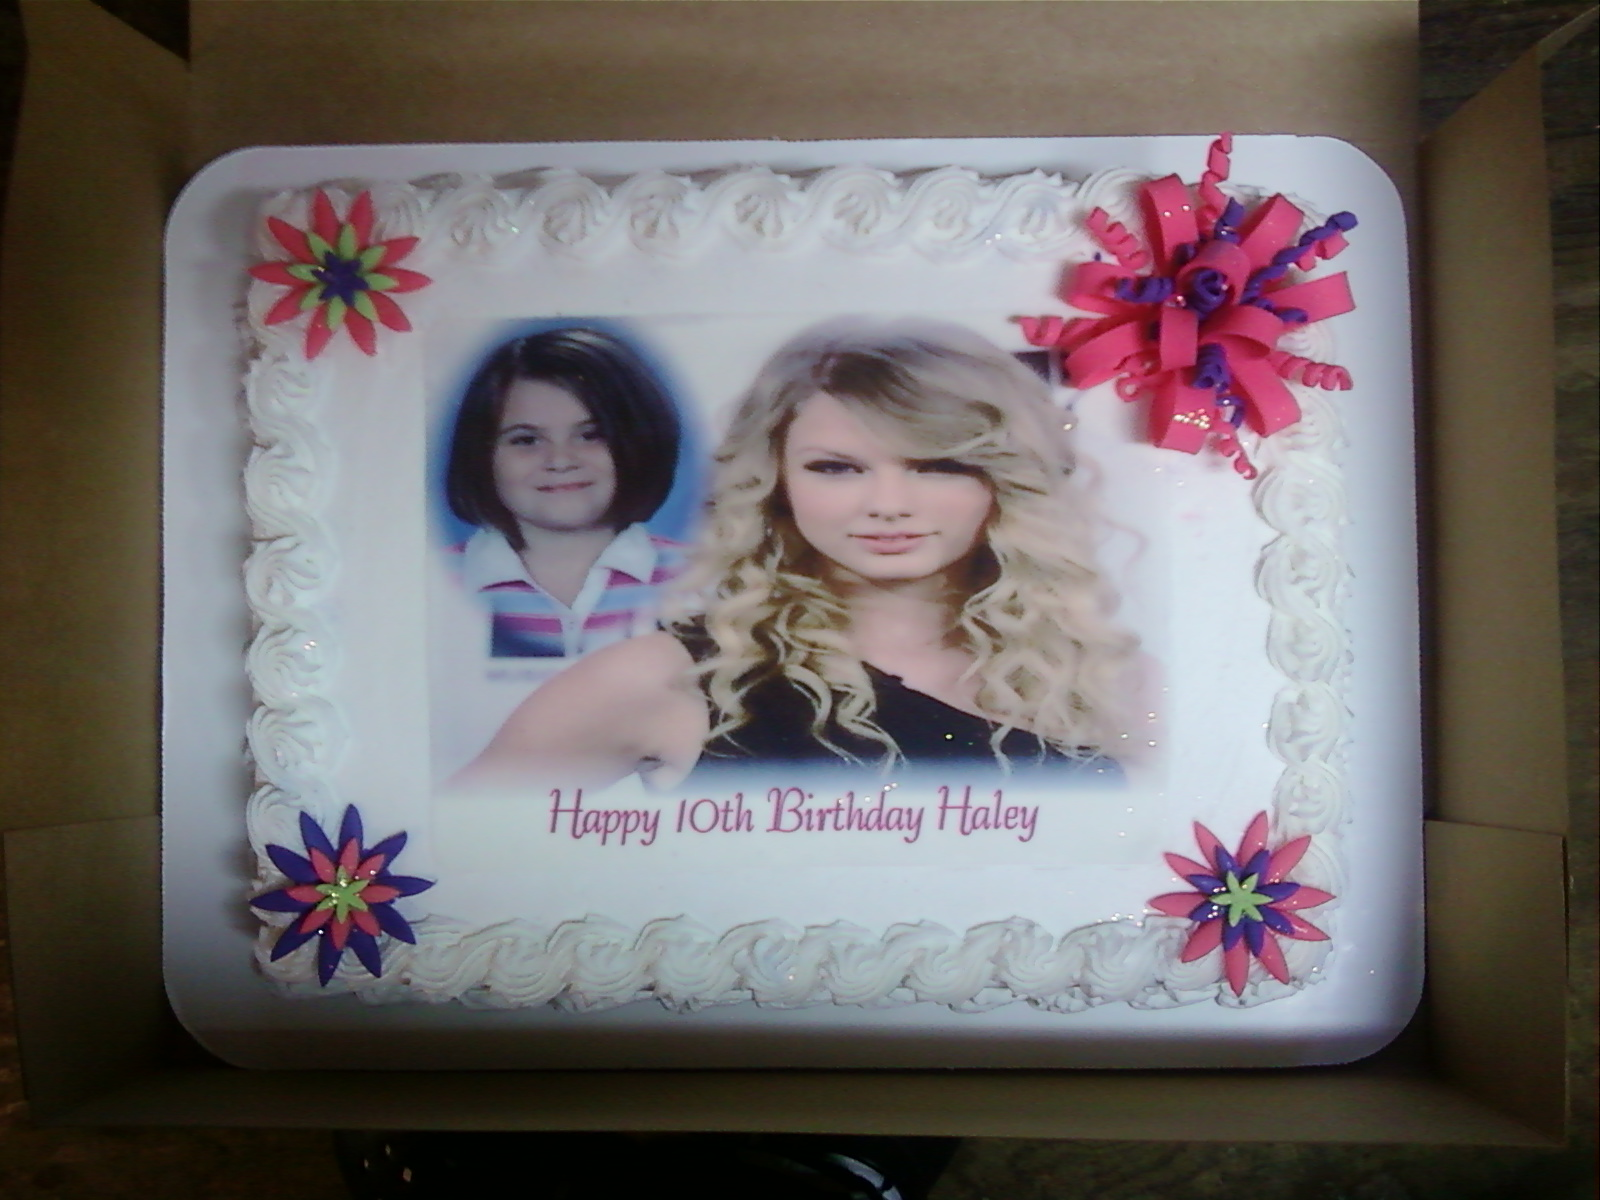 Tasty Cakes Taylor Swift Cake